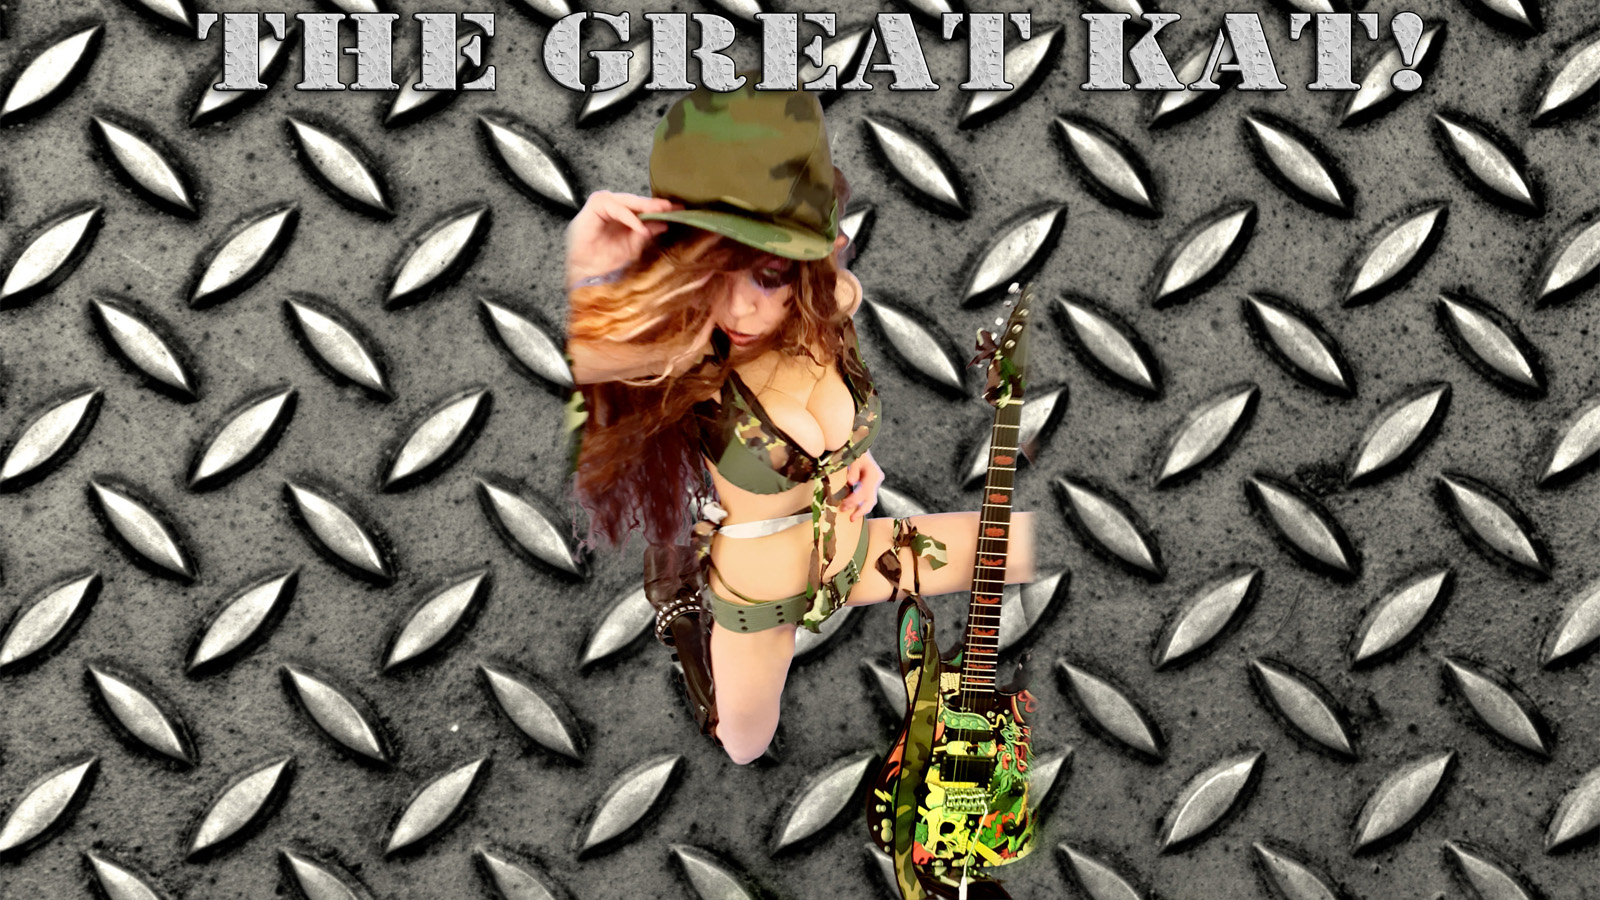 """MISTRESS of COMBAT! From The Great Kat's """"TERROR"""" MUSIC VIDEO!"""